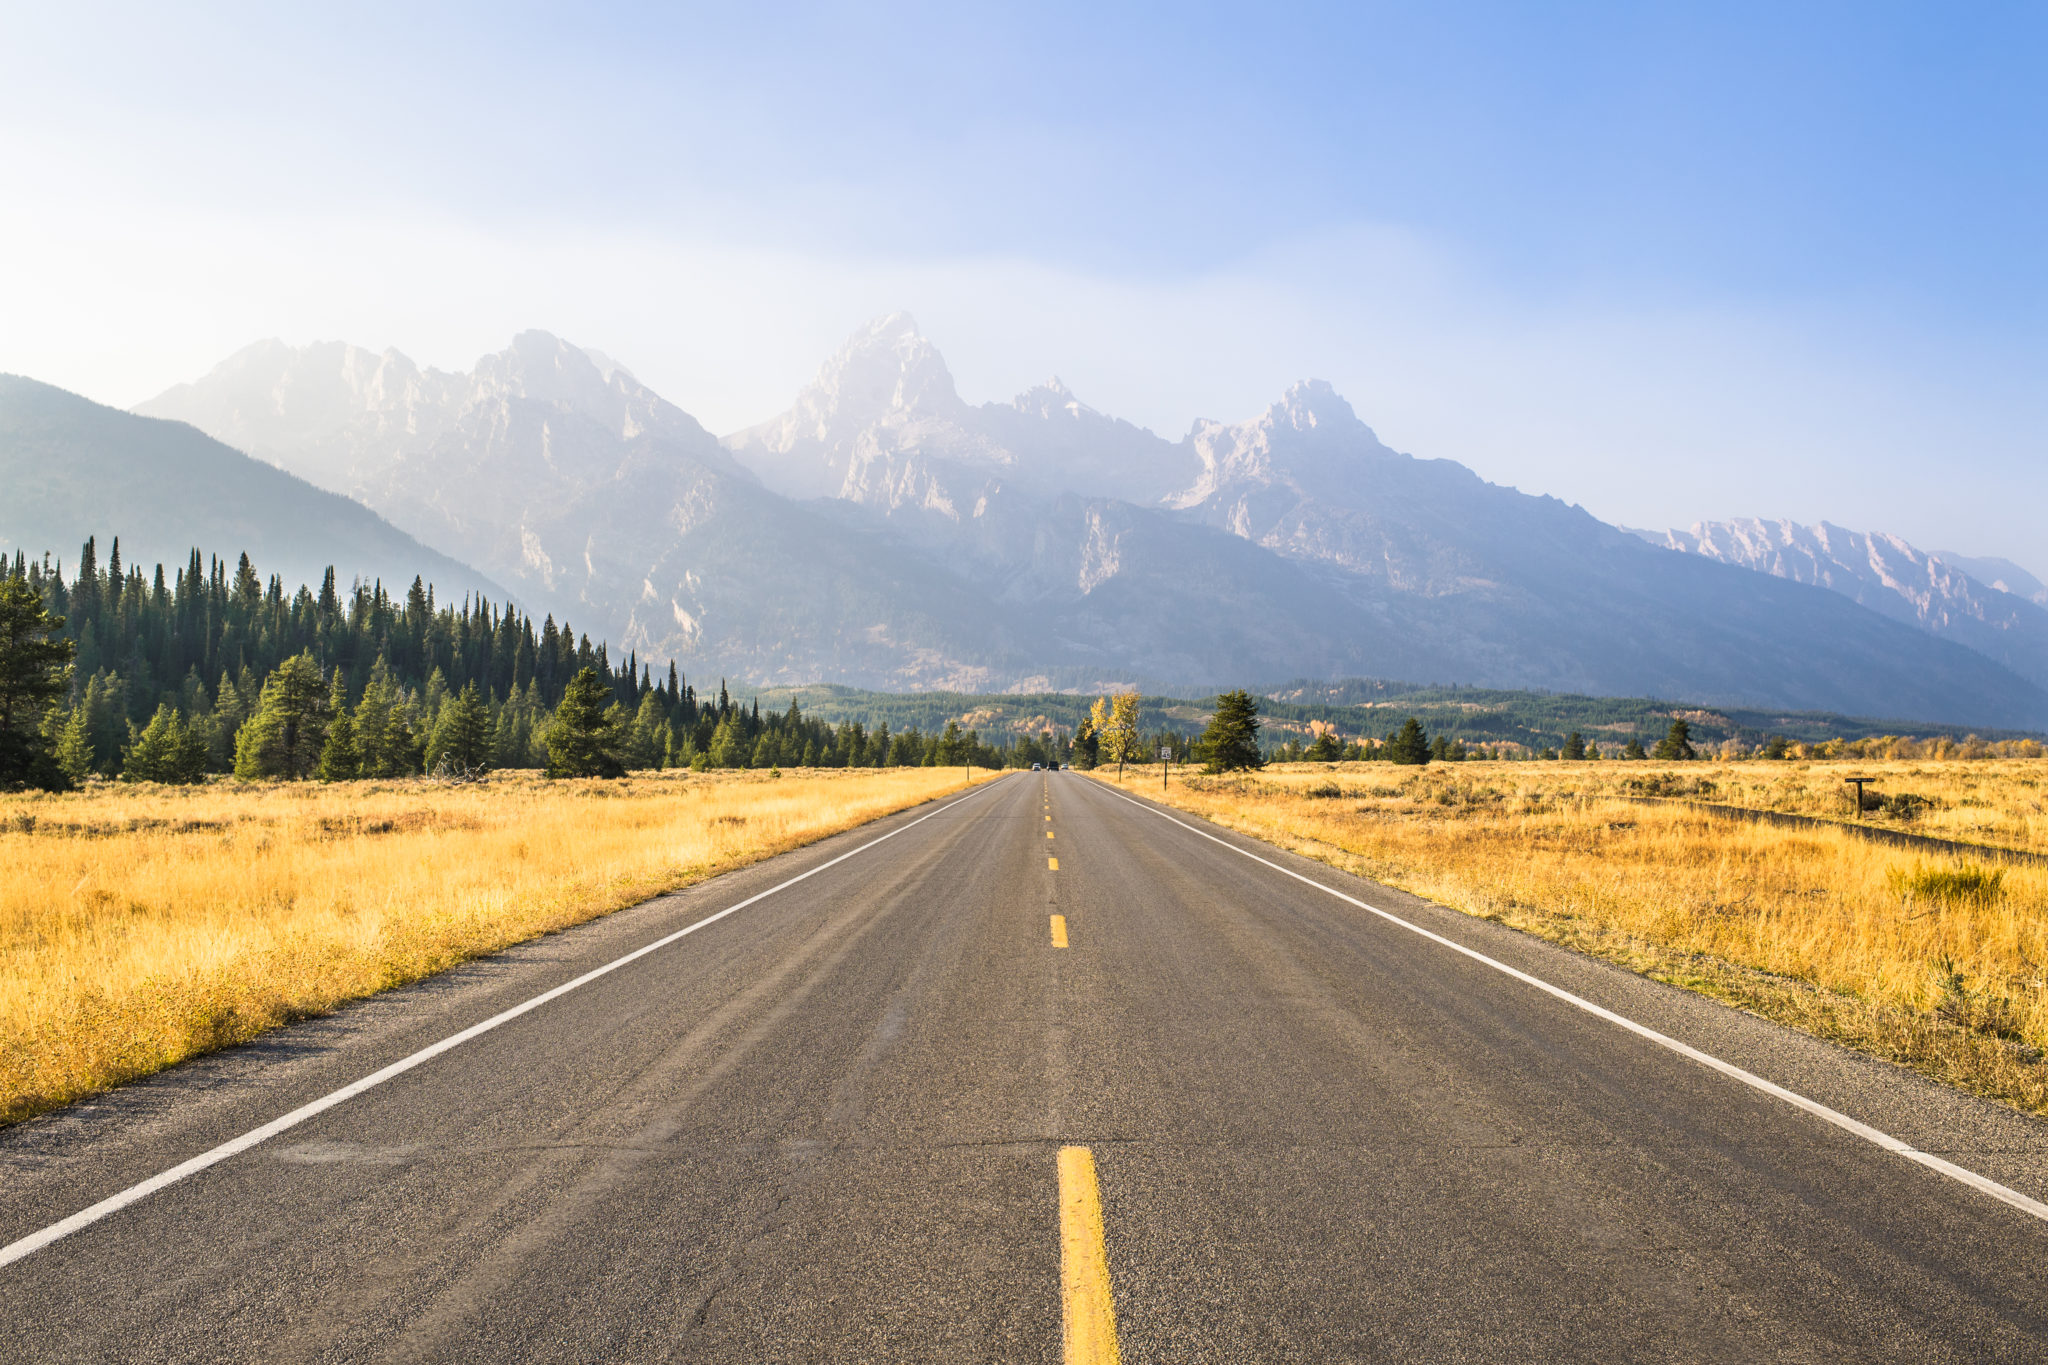 4-Days in the Grand Tetons, Wyoming